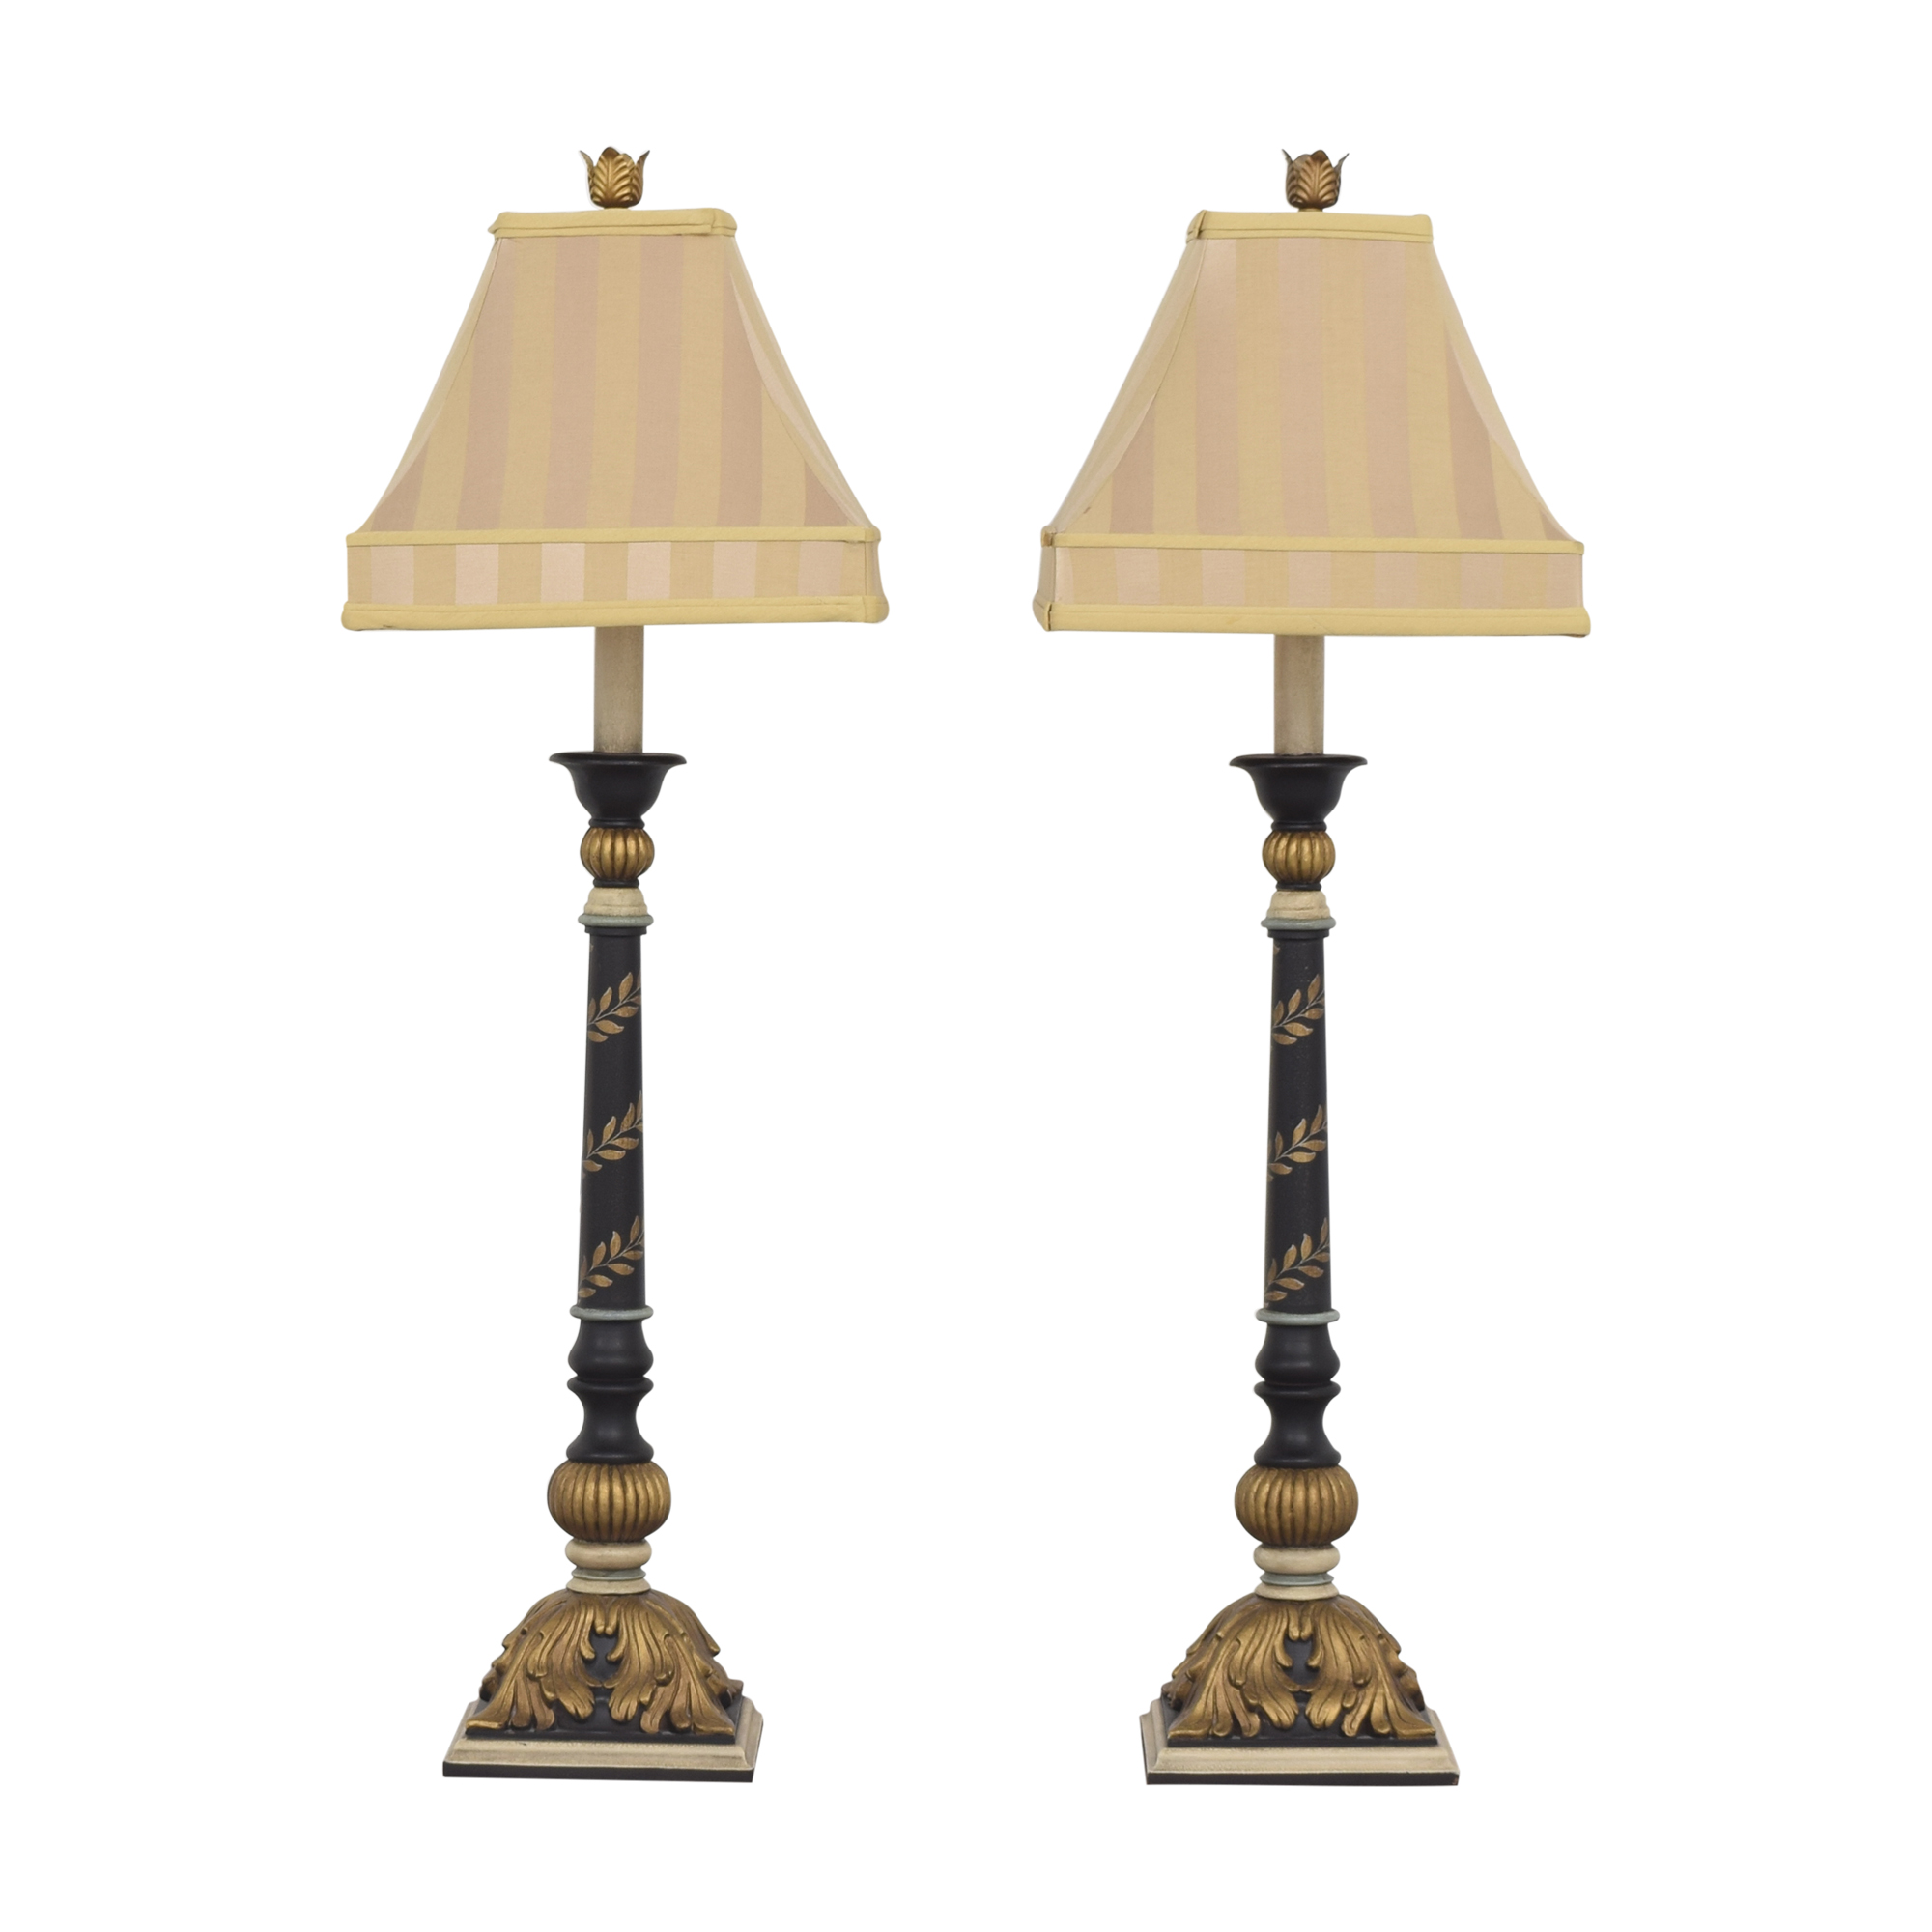 Ethan Allen Ethan Allen Tall Painted Table Lamps second hand